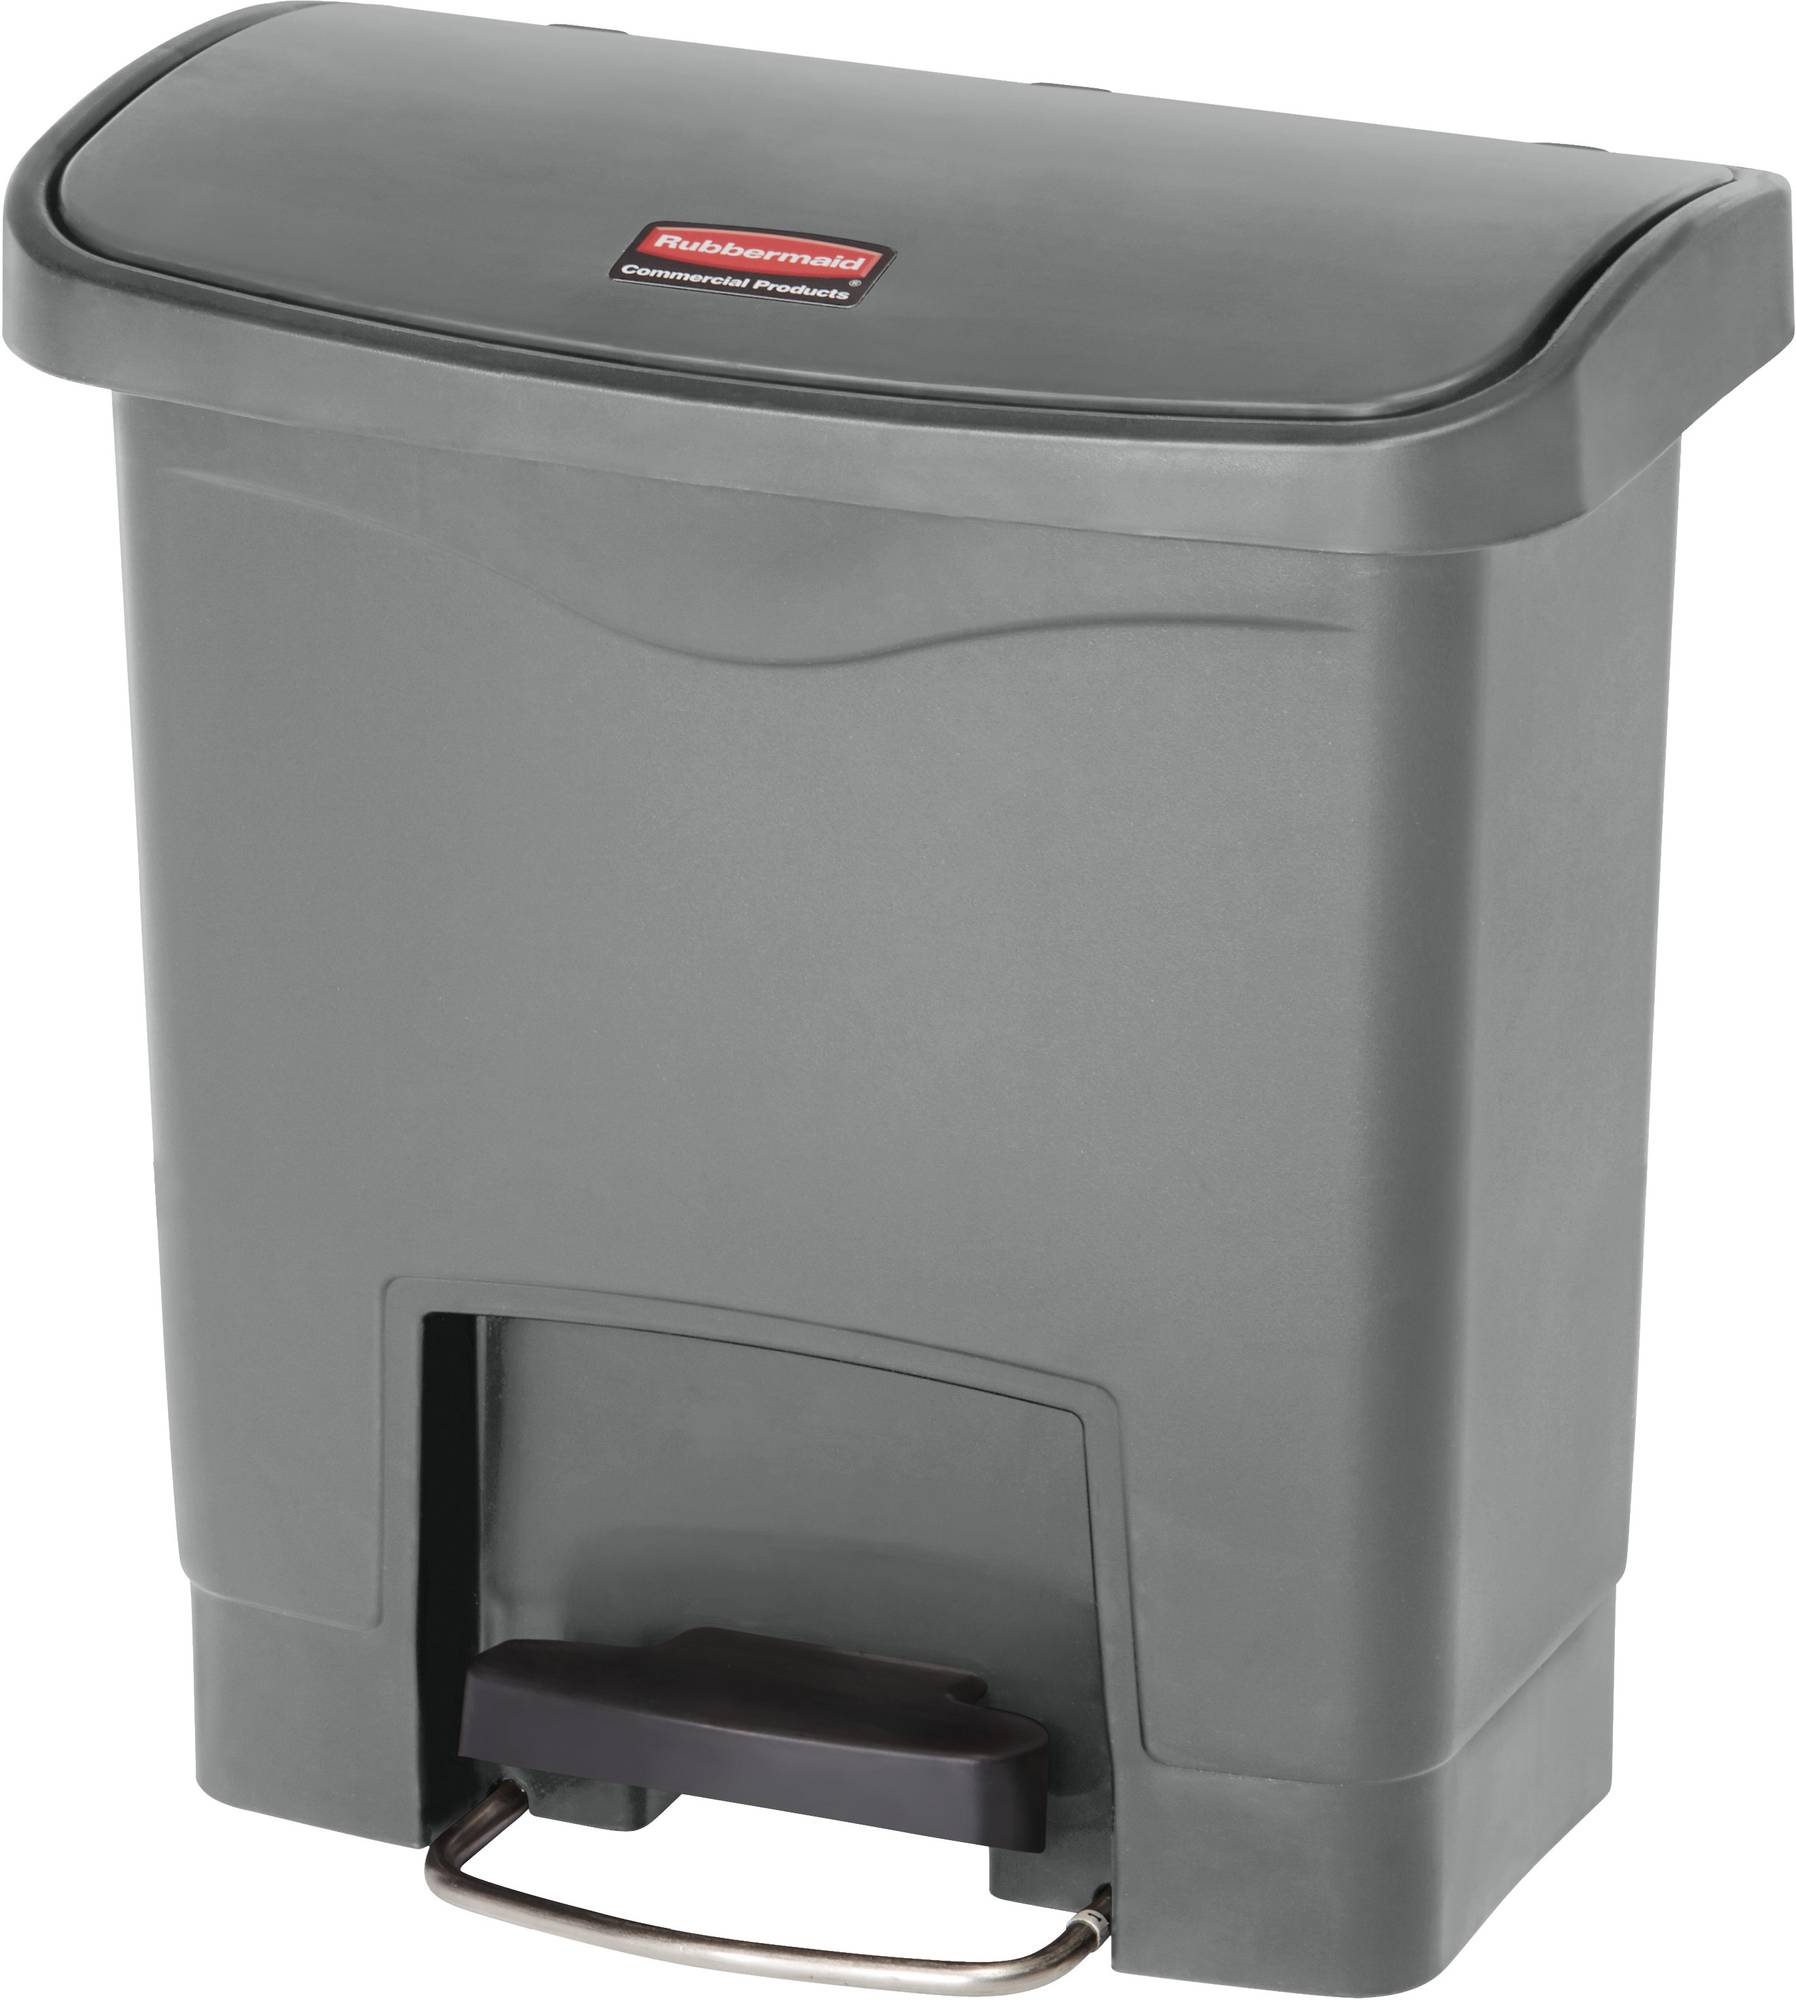 Rubbermaid Slim Jim Step On Container, Front Step mit 15 Liter Füllmenge in Grau